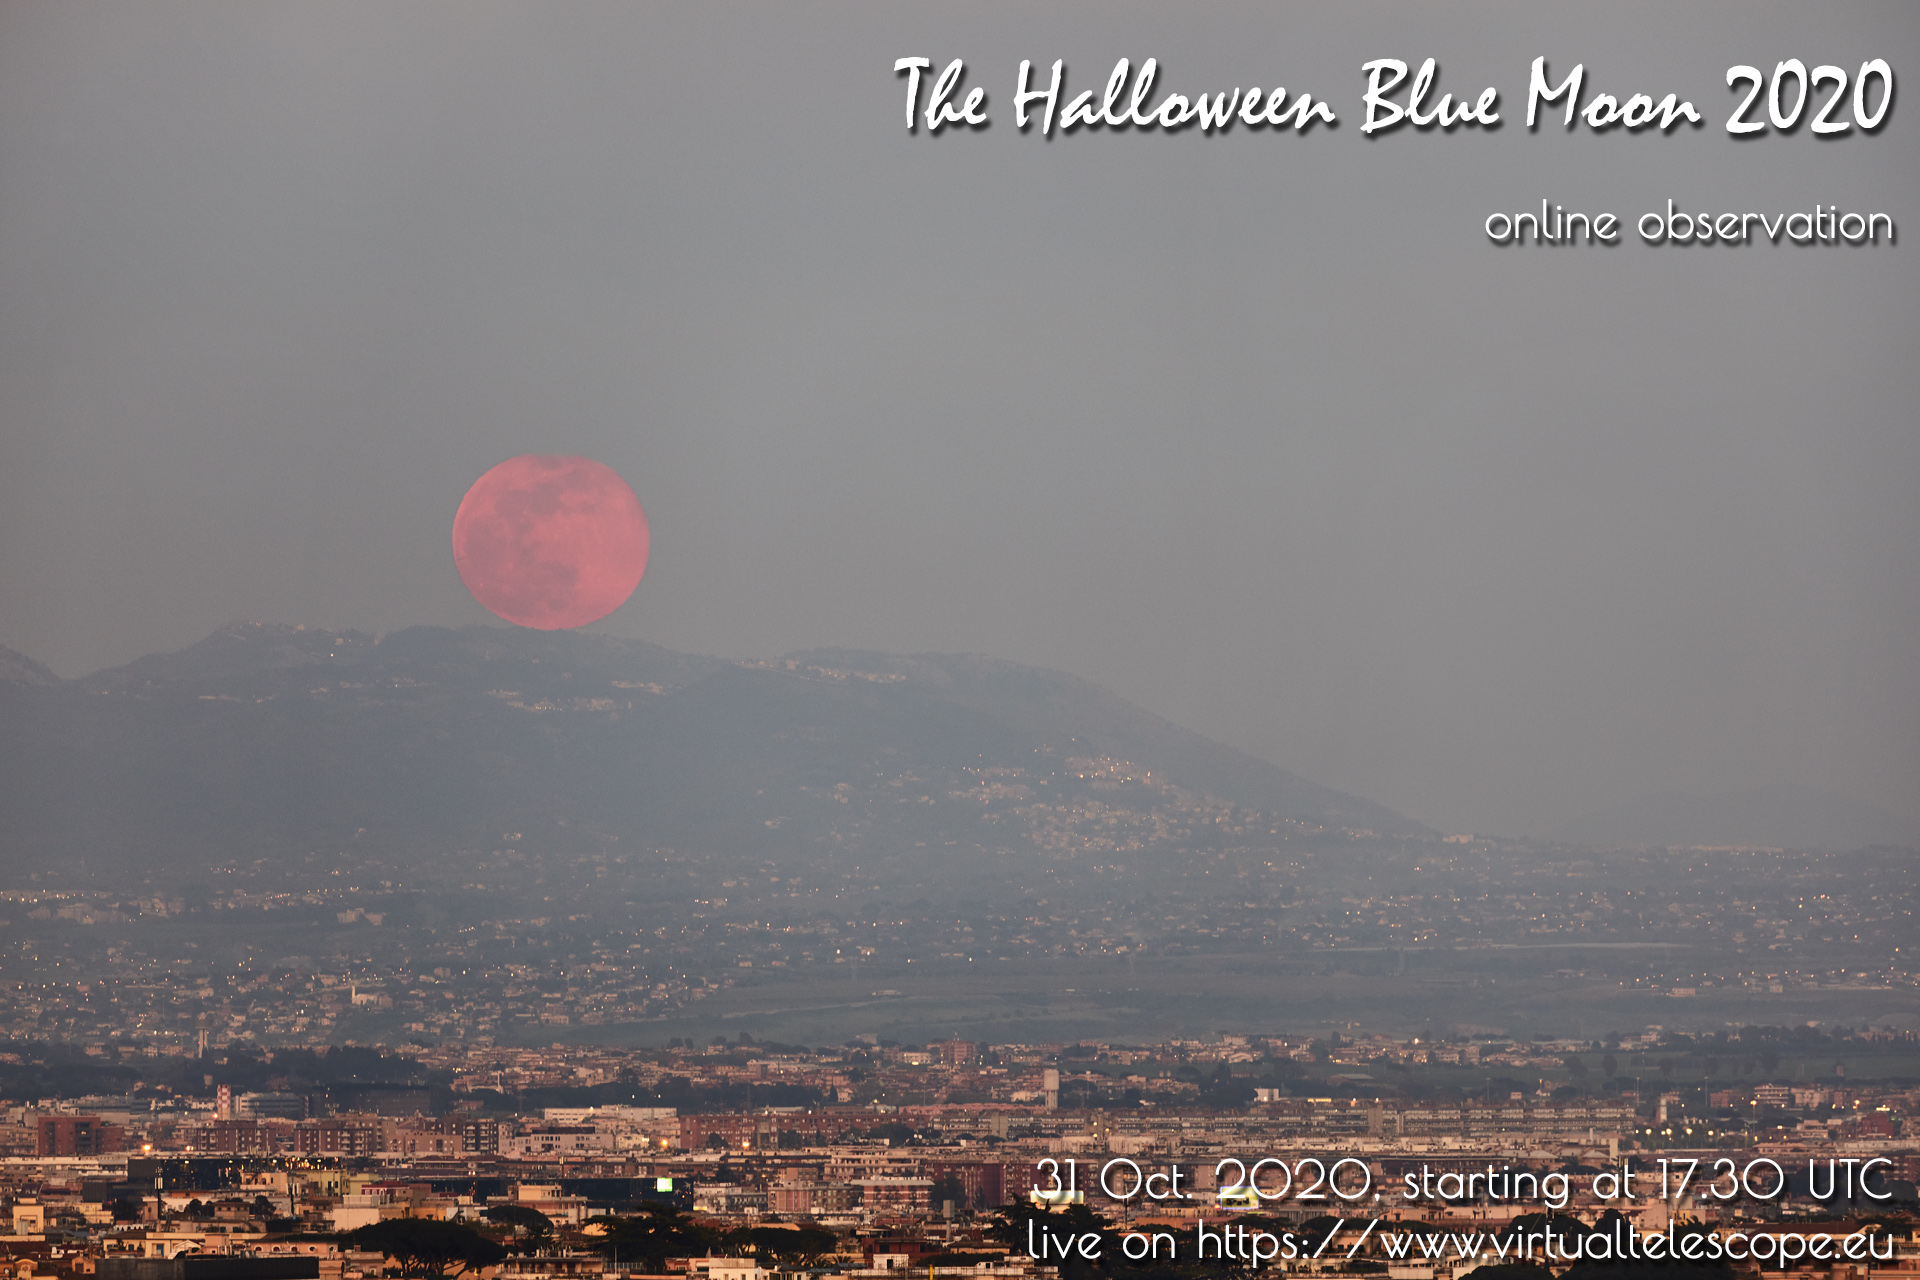 The Halloween Blue Moon 2020: poster of the event.